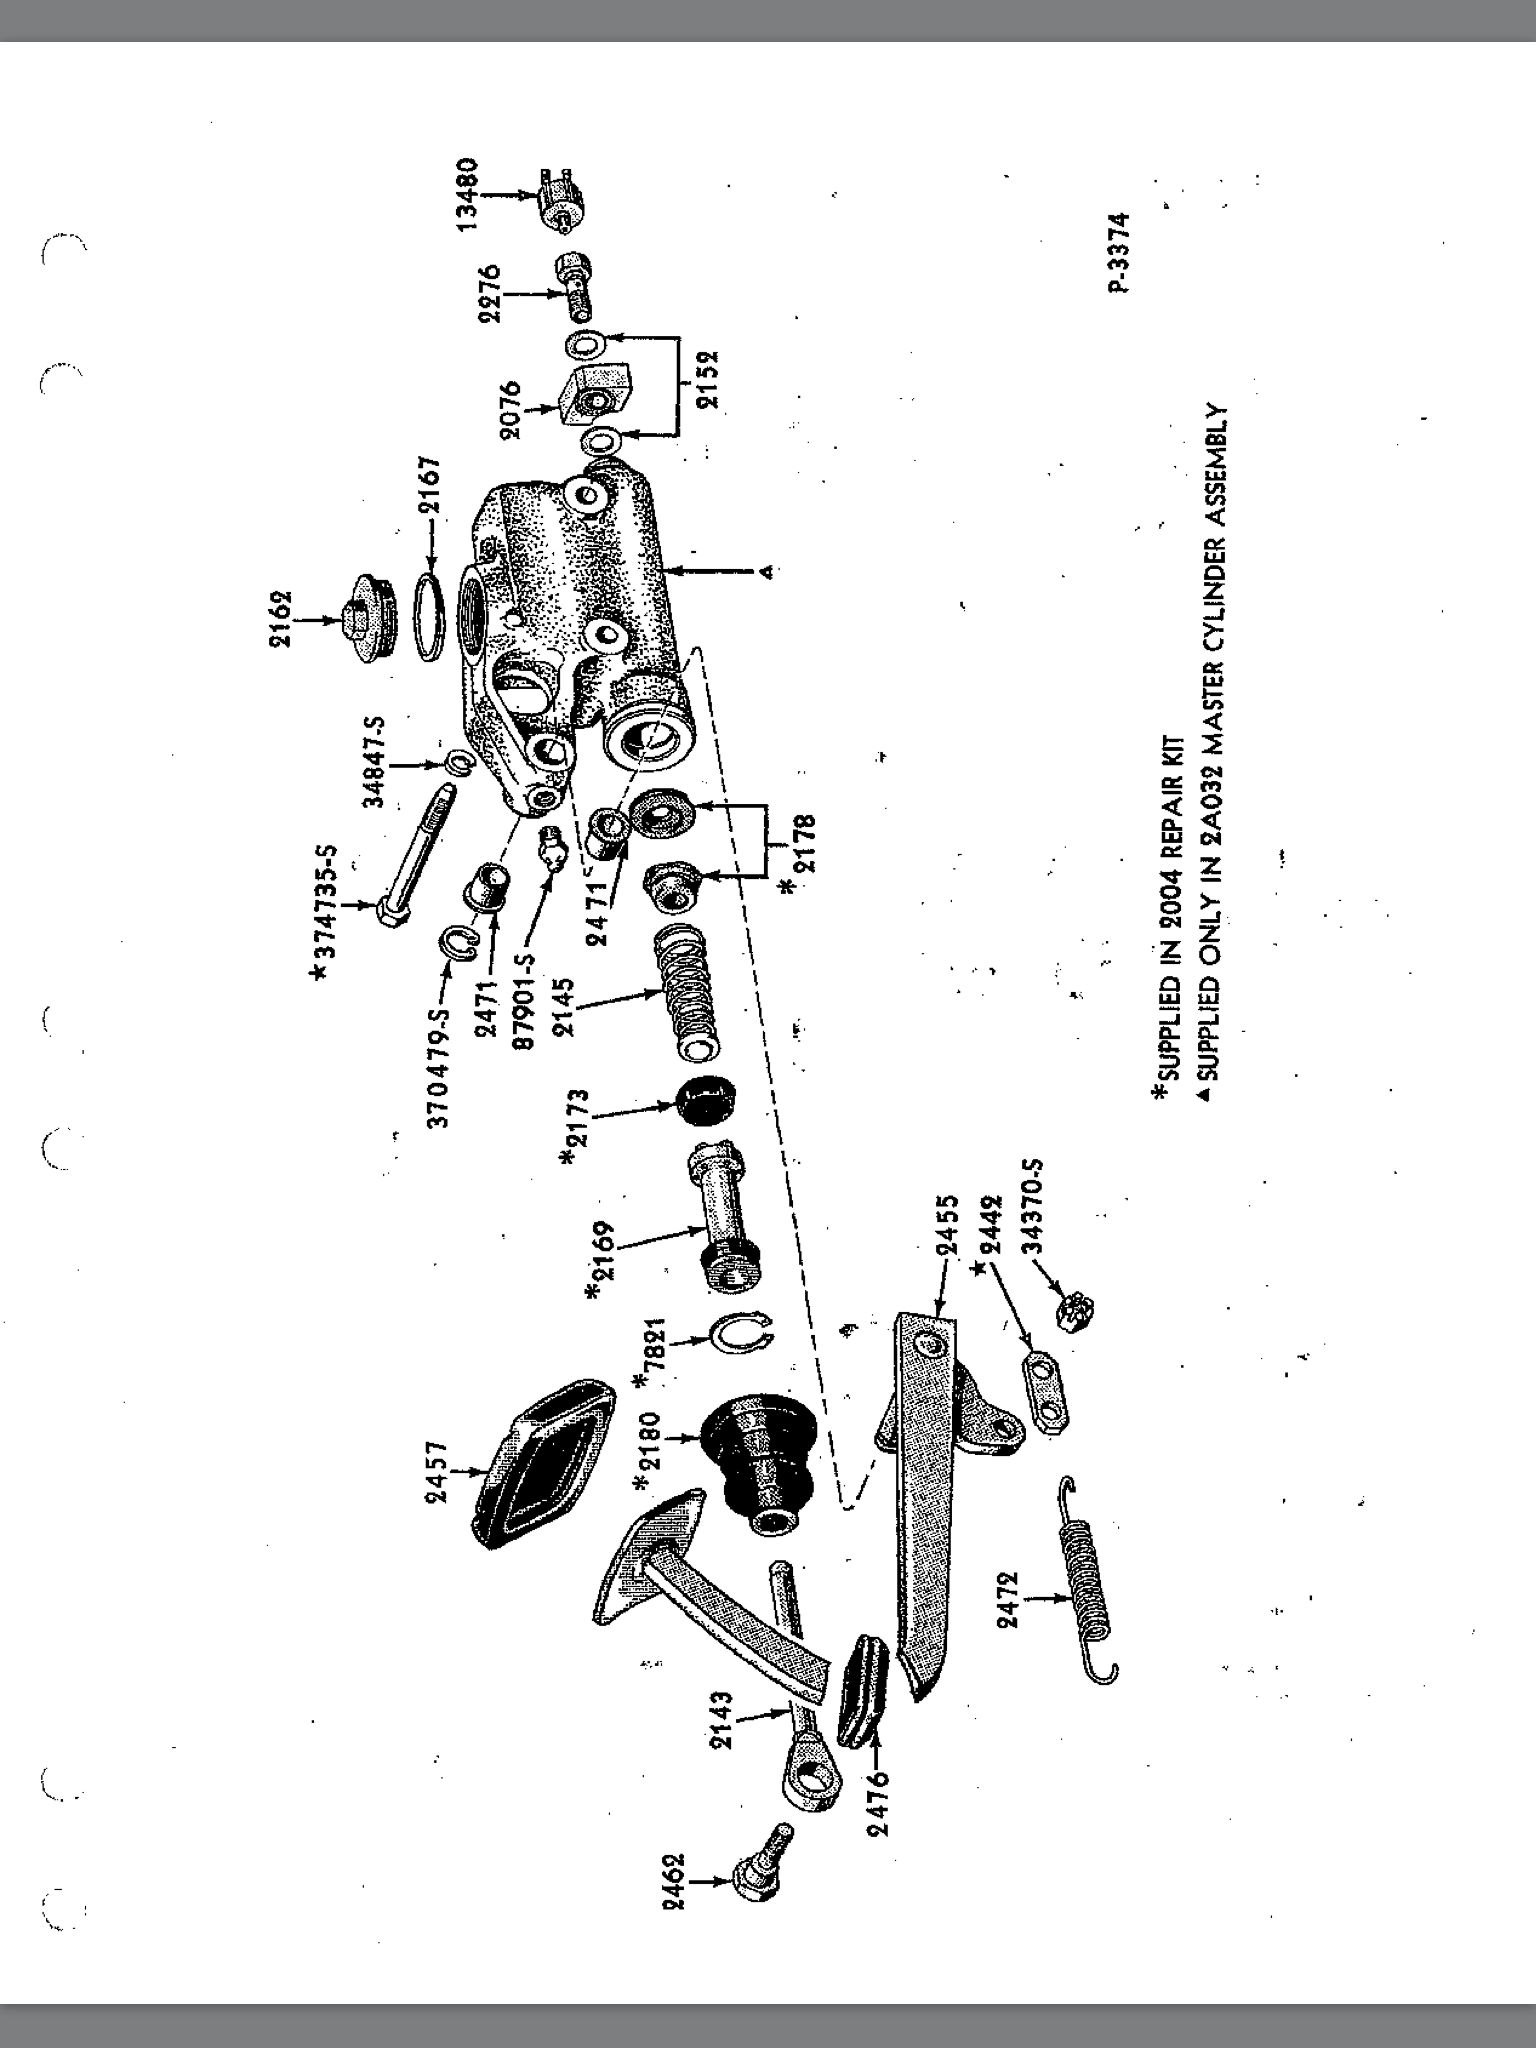 master cylinder exploded view exploded view, trading strategies, chf, ford  trucks, buses